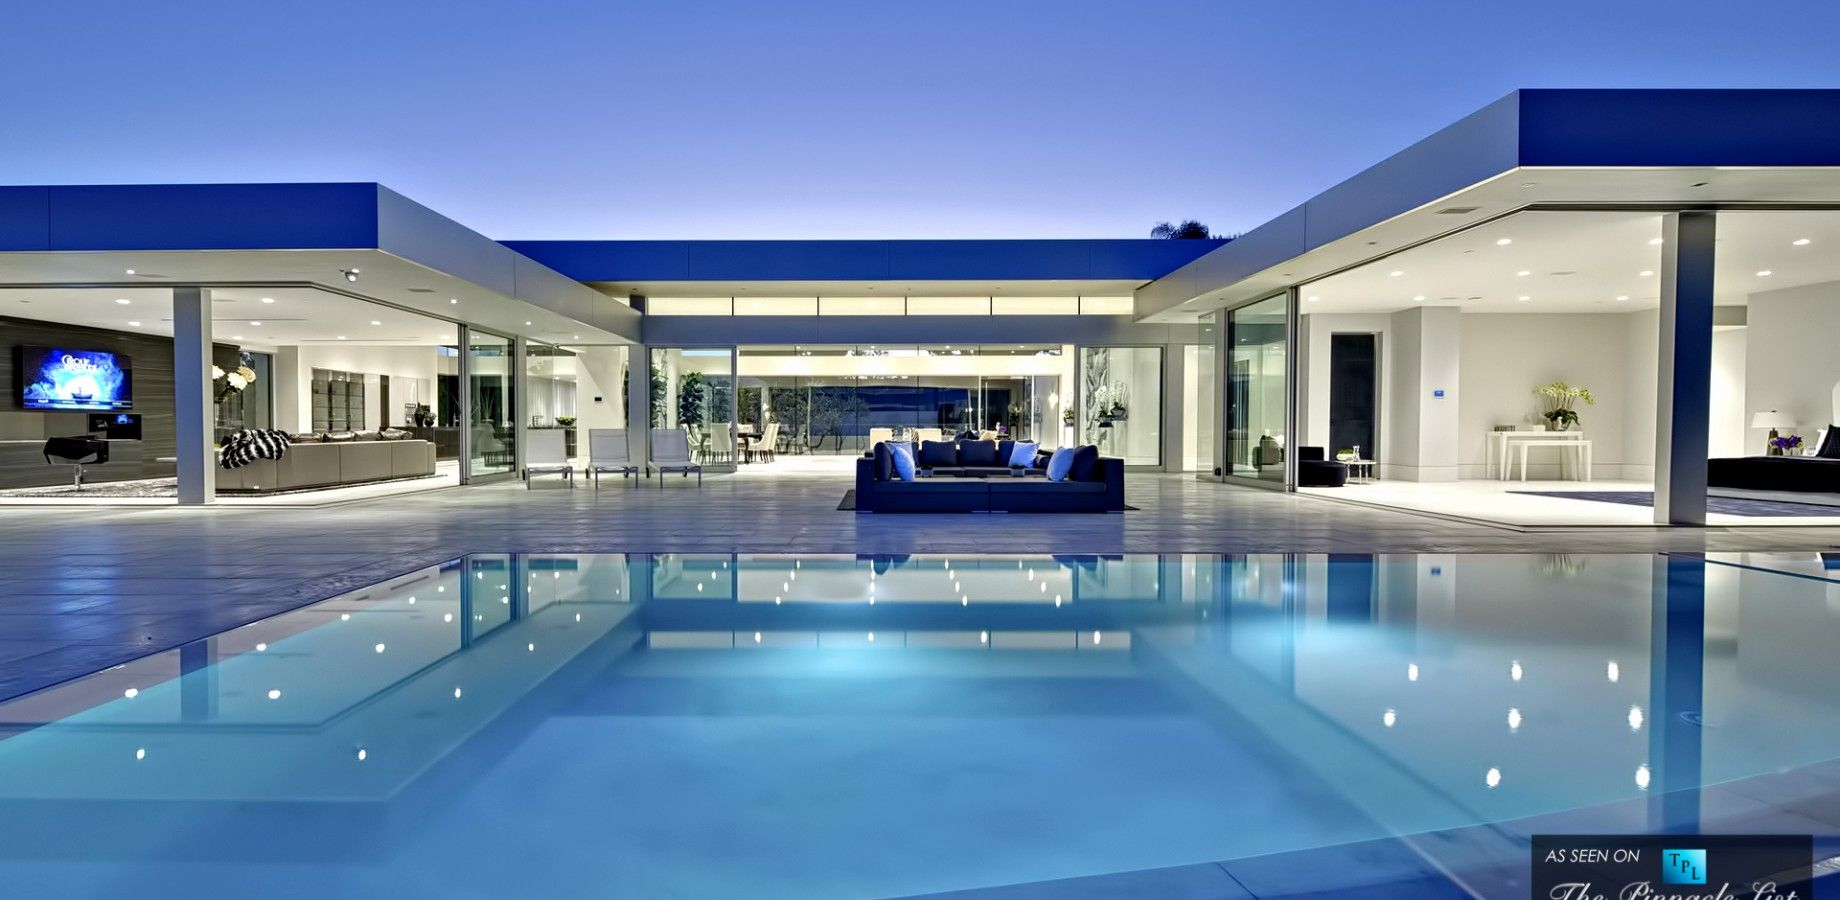 255 million luxury residence 1620 carla ridge beverly hills ca